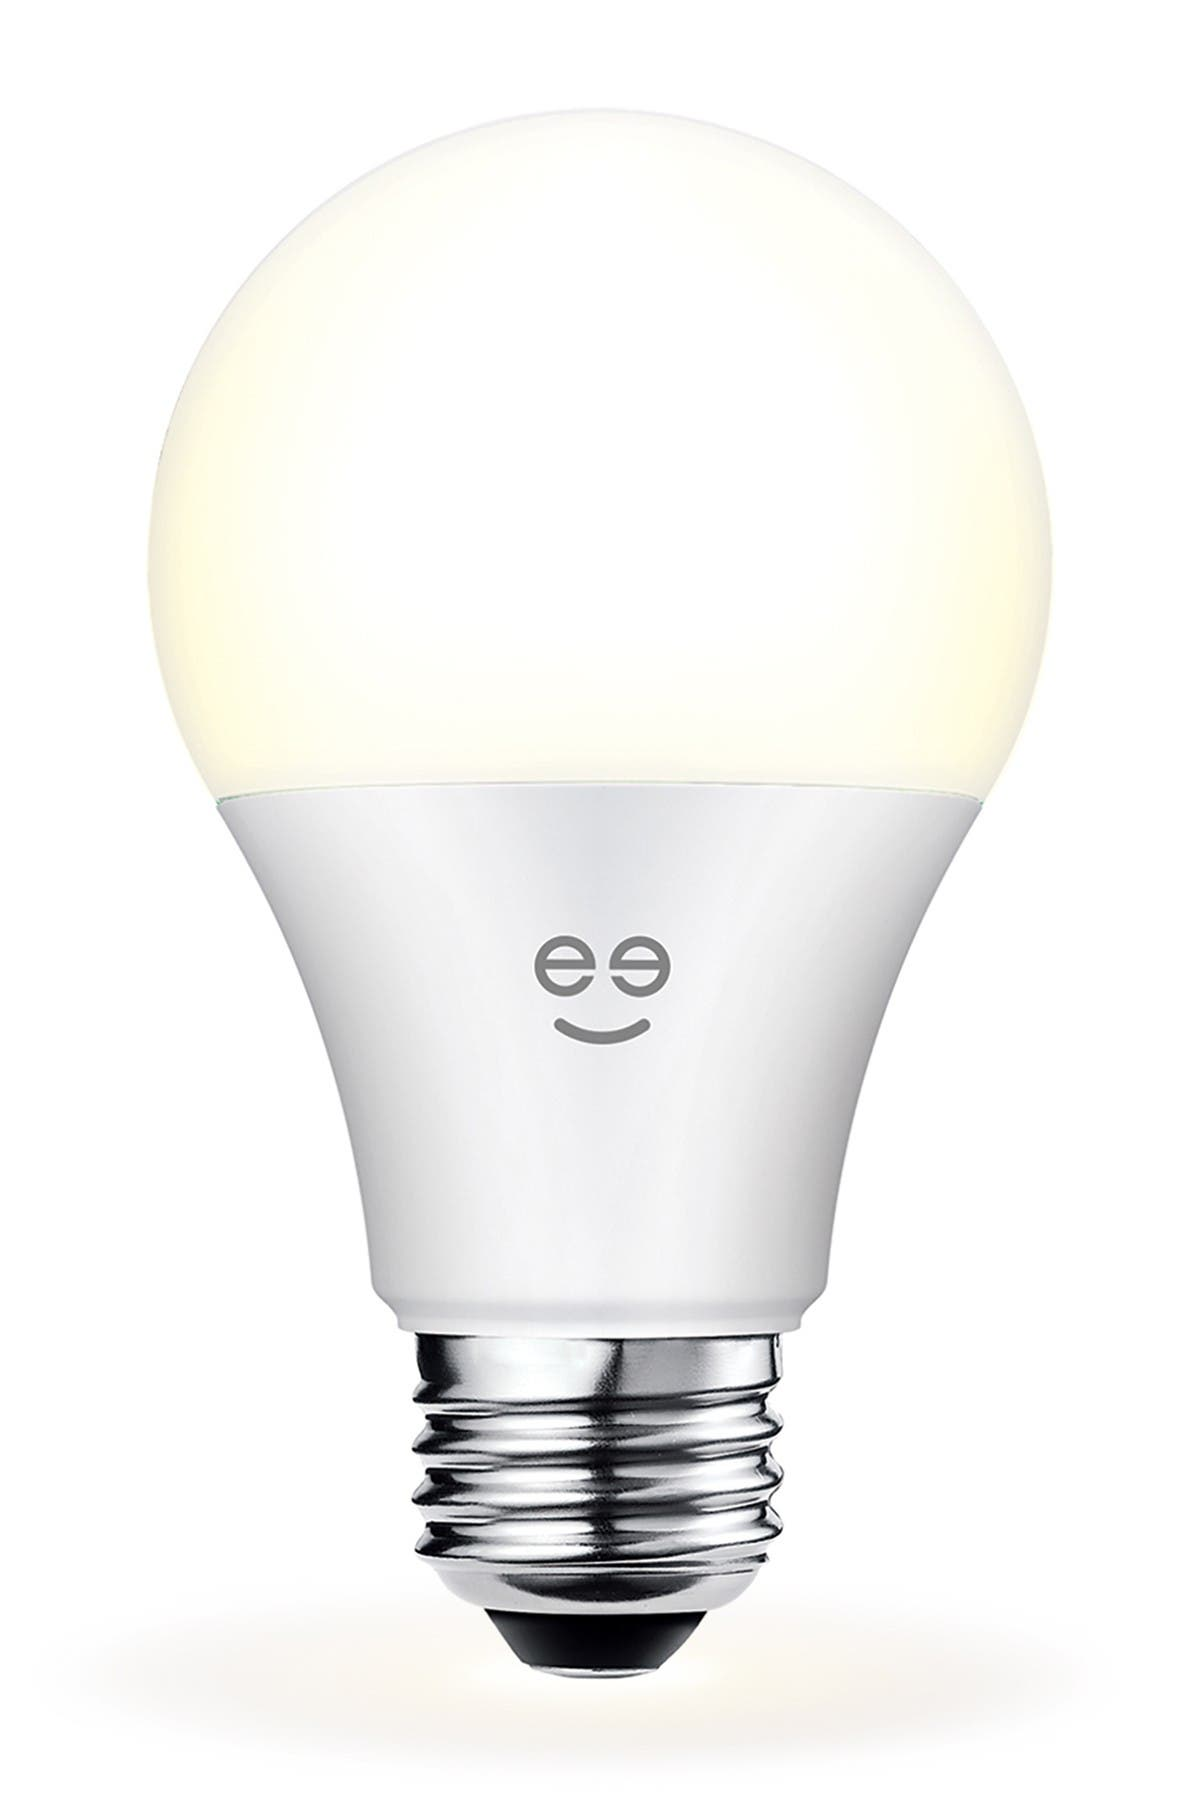 Image of Merkury Innovations White Lux 800  Dimmable Bulb